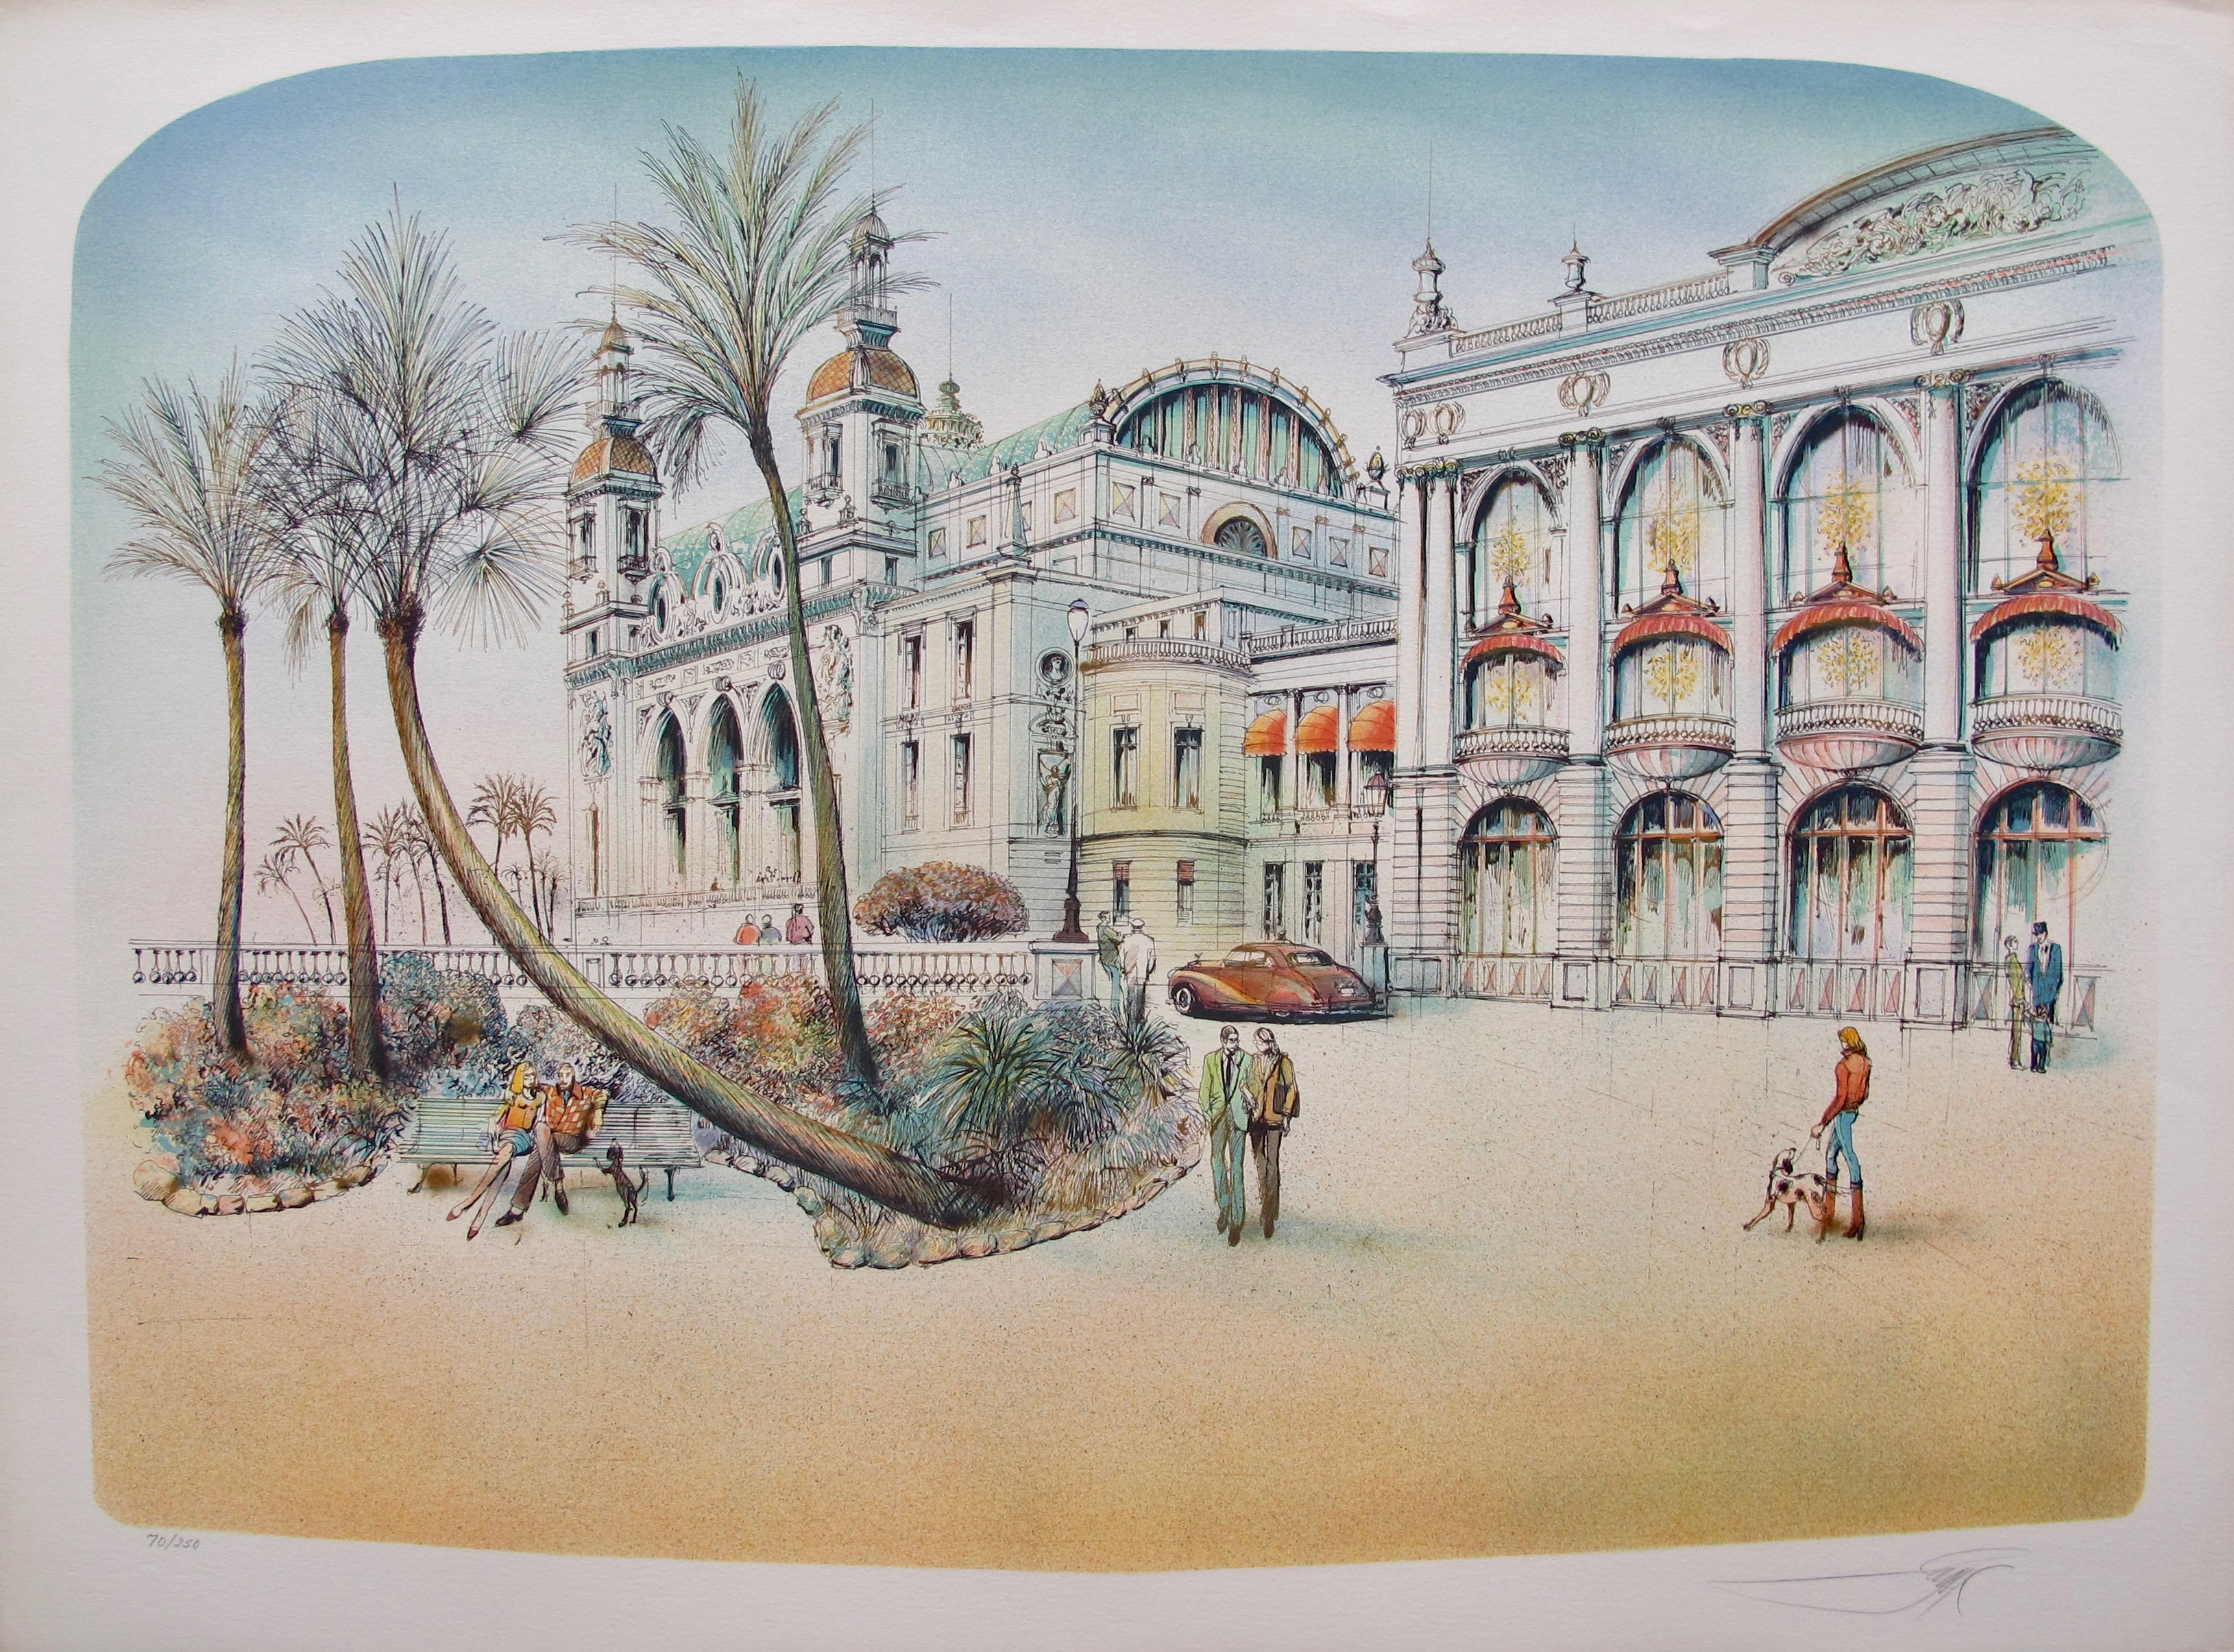 ROLF RAFFLEWSKI MONTE CARLO FRANCE Hand Signed Limited Edition Lithograph